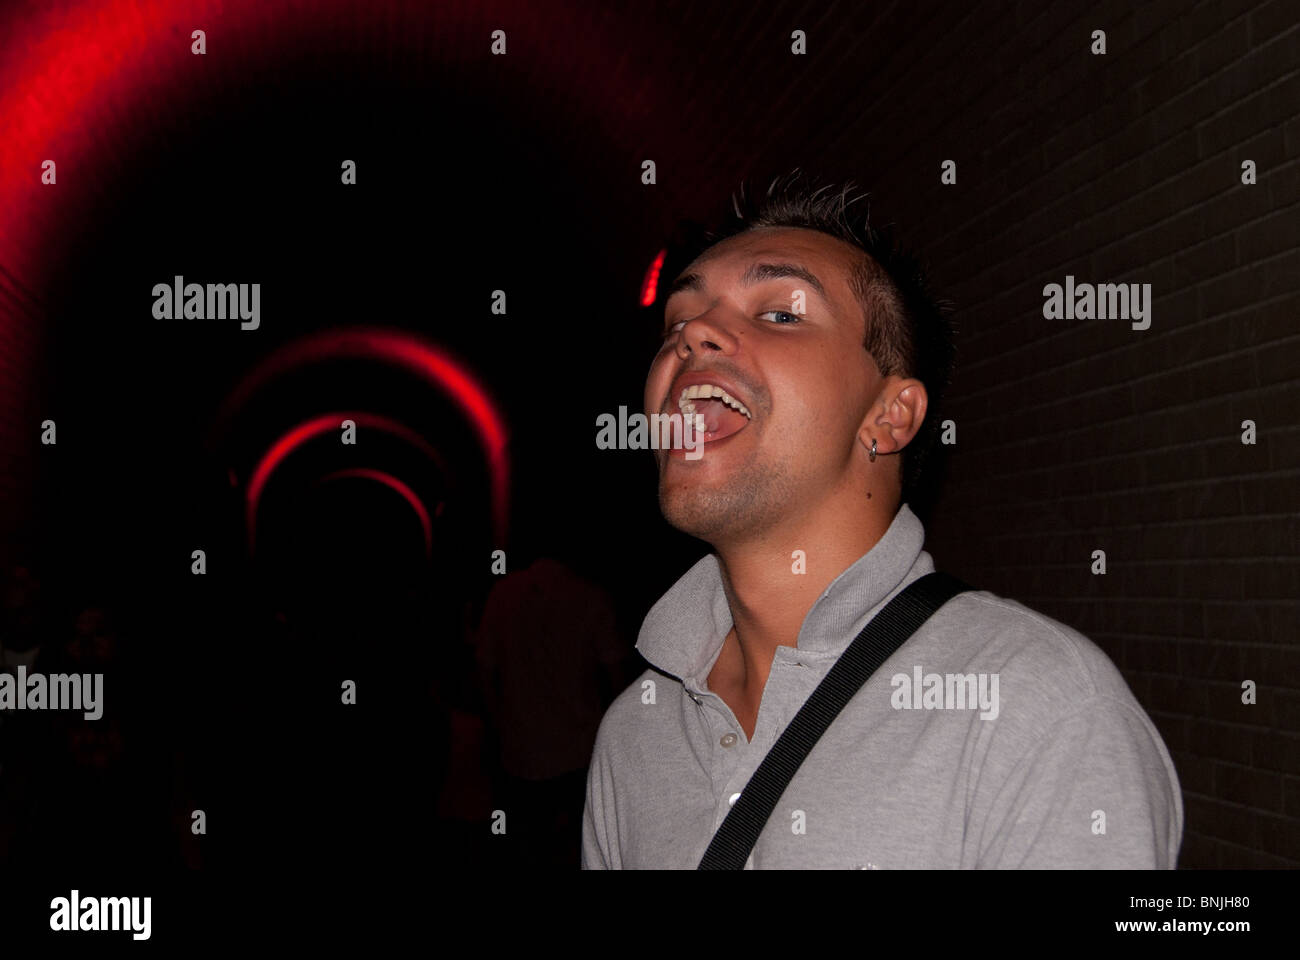 The guy sings in the tunnel, tunnel is dark with the crimson neon light - Stock Image